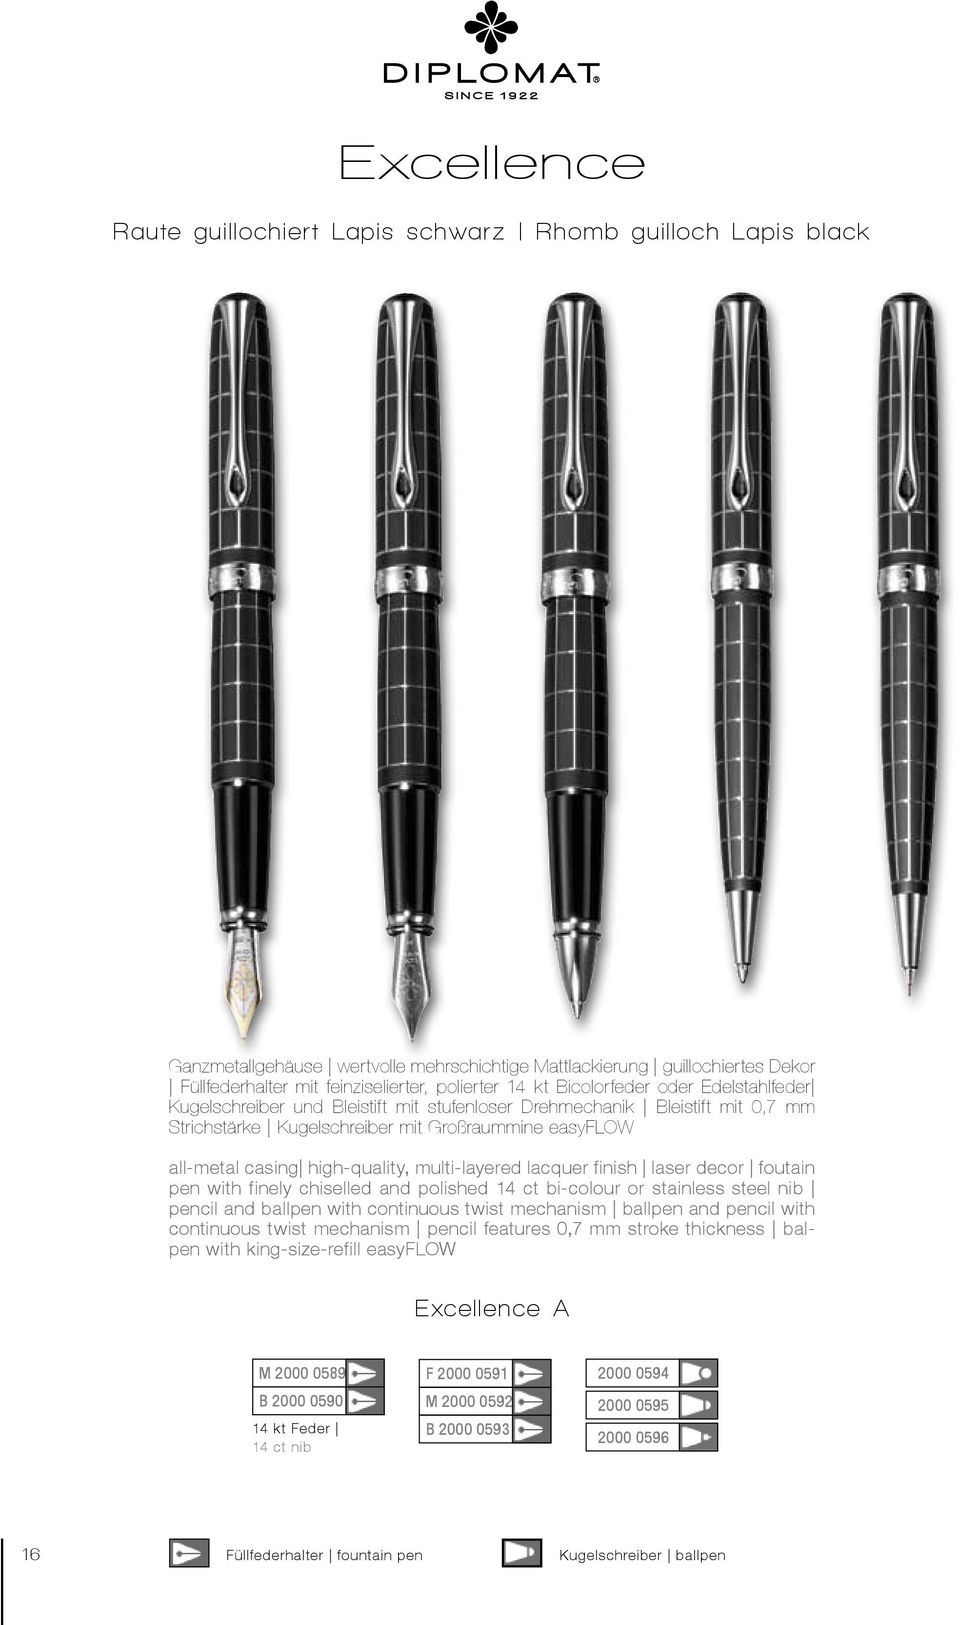 multi-layered lacquer finish laser decor foutain pen with finely chiselled and polished 14 ct bi-colour or stainless steel nib pencil and ballpen with continuous twist mechanism ballpen and pencil